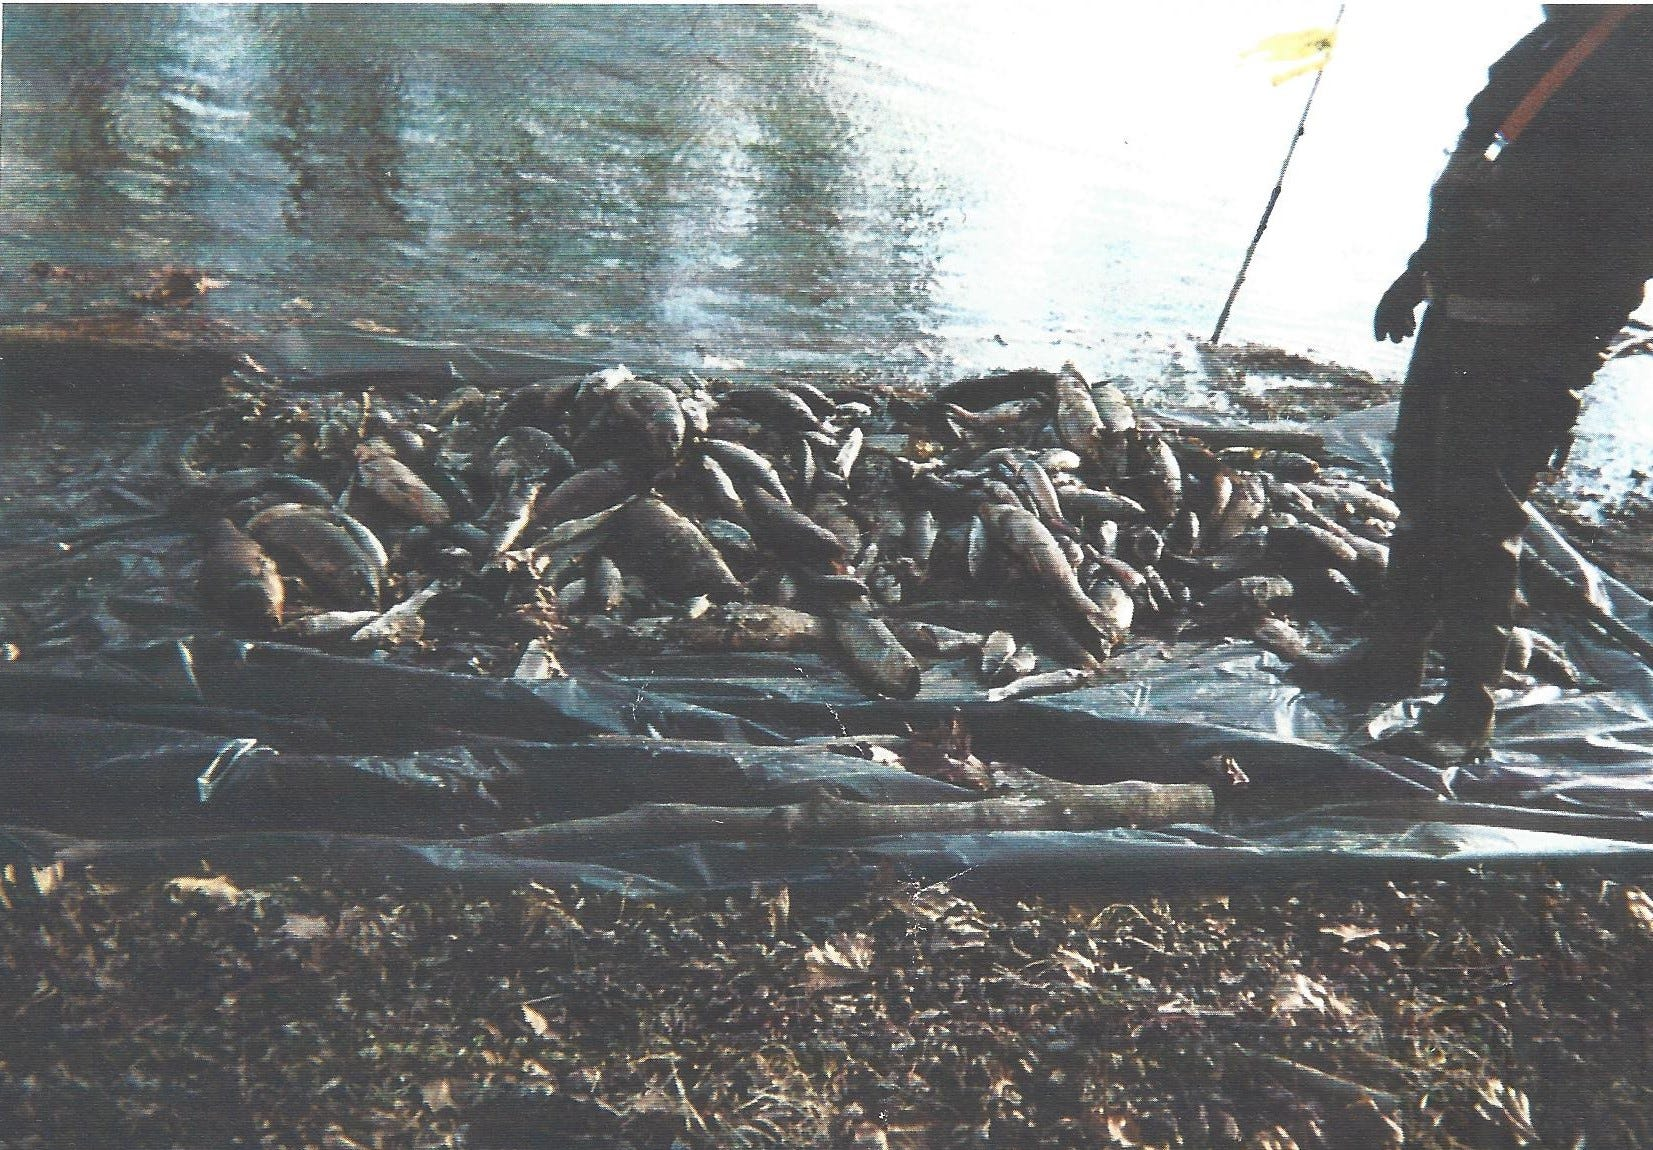 Dead fish on the banks of the White River after the Guide spill in December of 1999. The Guide Corp. in Anderson dumped toxic chemicals into the White River, ultimately killing more than 4 million fish through Downtown Indianapolis.